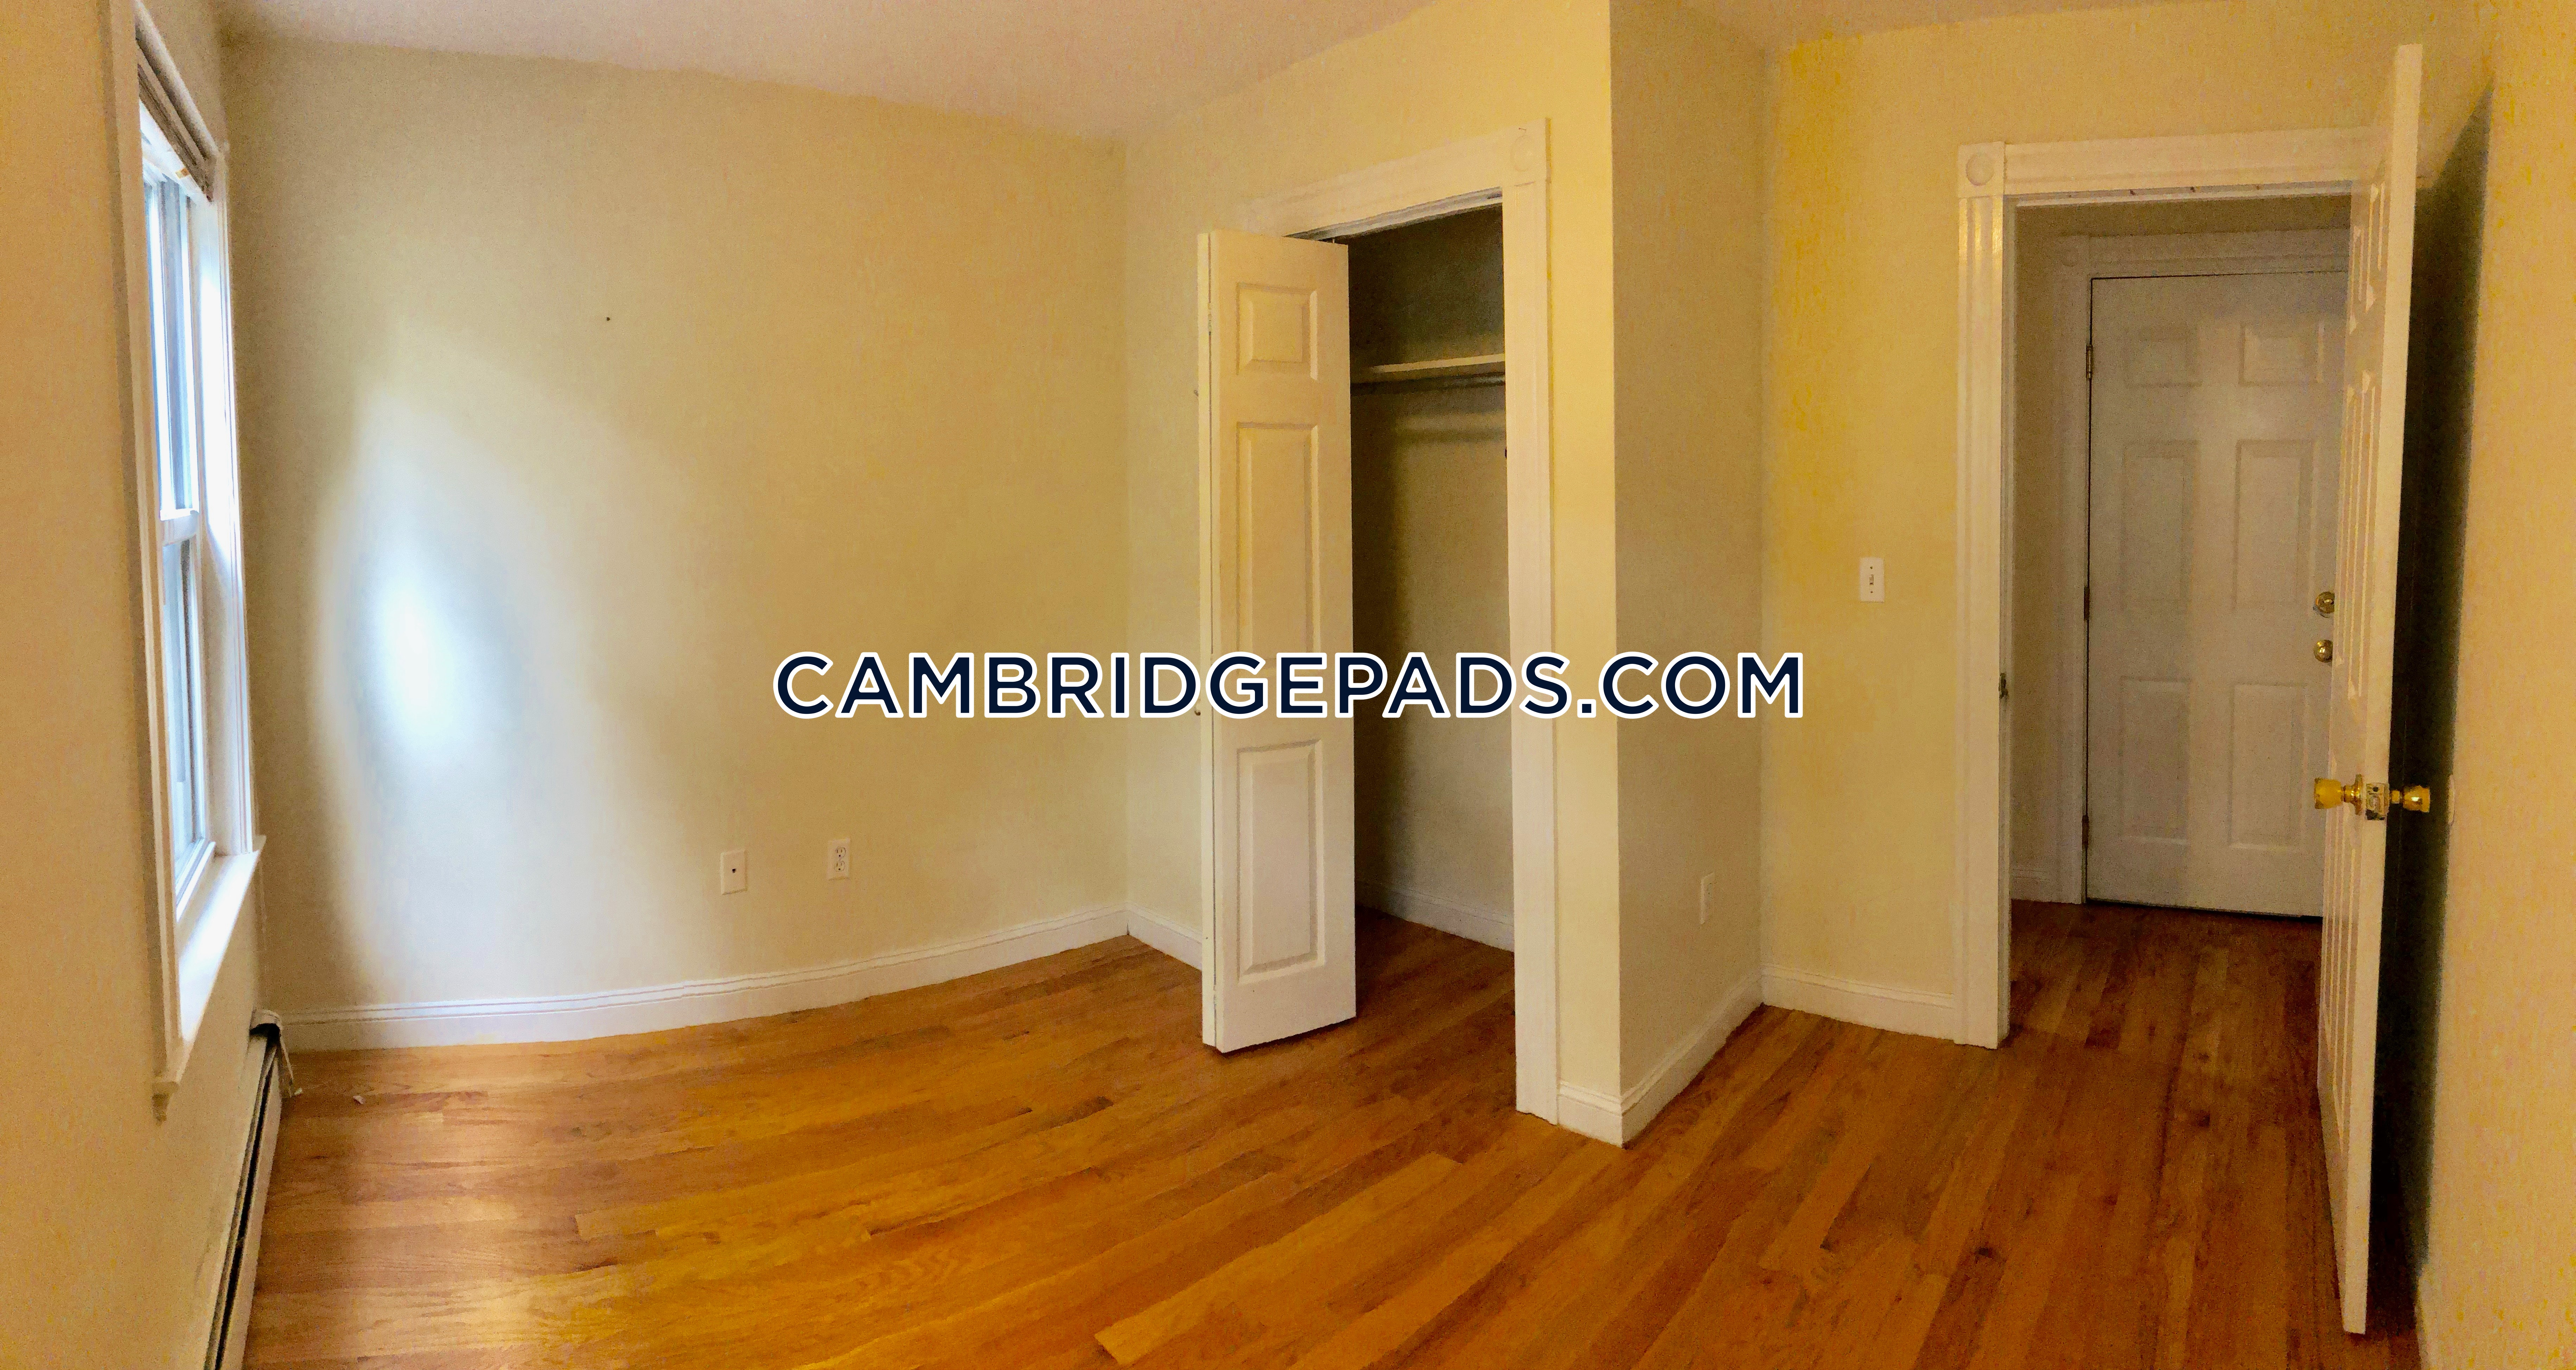 CAMBRIDGE - HARVARD SQUARE - $2,950